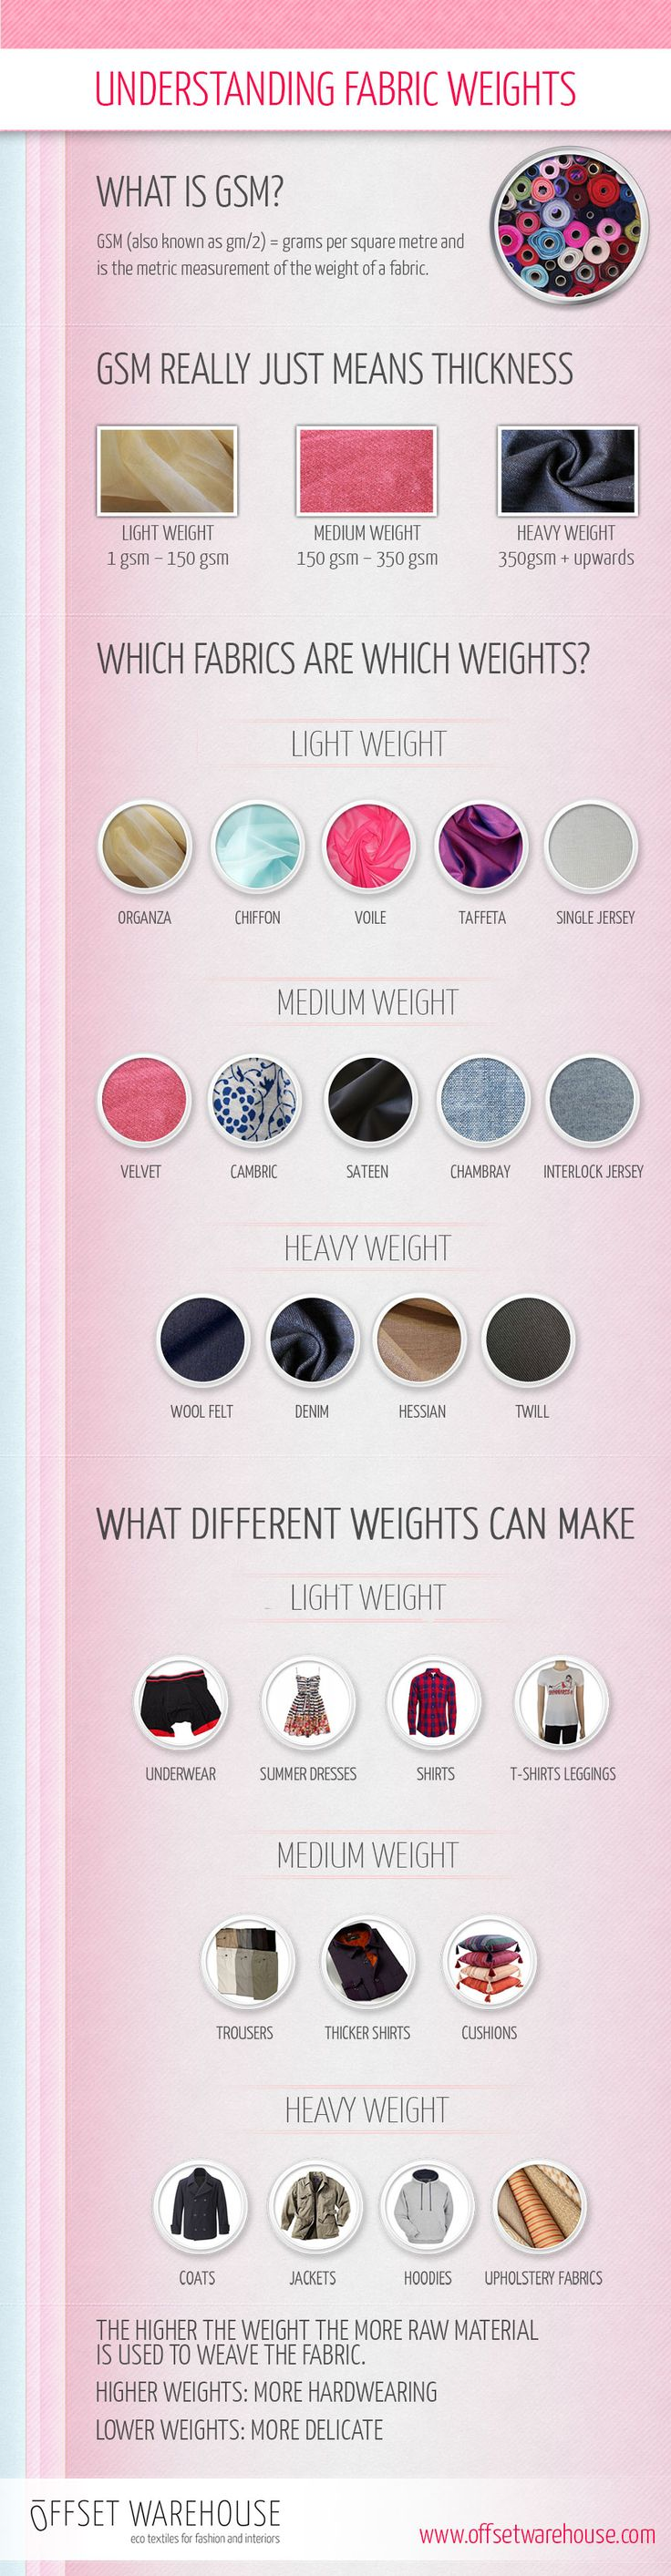 Do you know what GSM stands for? Does choosing the correct fabric weight for your design leave you baffled? Check out this handy infographic to make understanding fabric weights a doddle!  advice design ethical fabric gsm heavyweight help infographic lightweight mediumweight roundup sewing weight